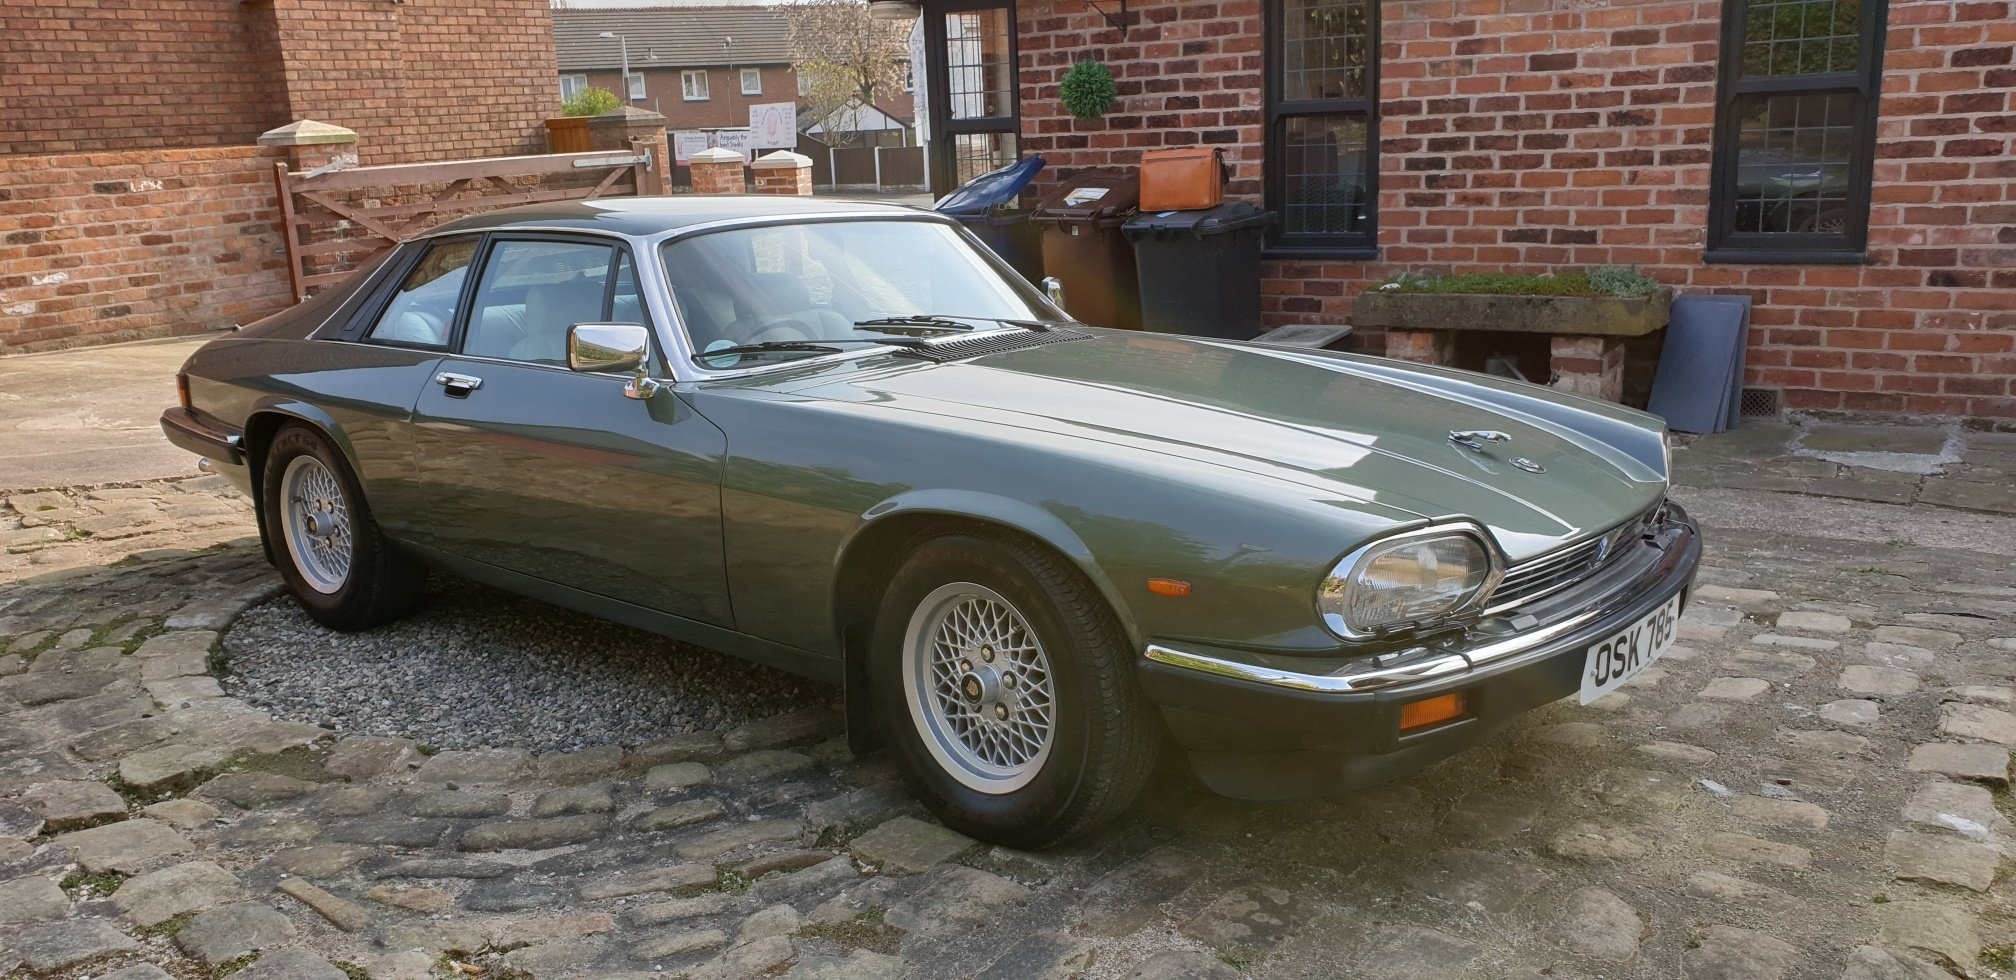 1985 Jaguar XJS V12 HE 39,000 Miles 2 Prev Owners For Sale (picture 1 of 6)